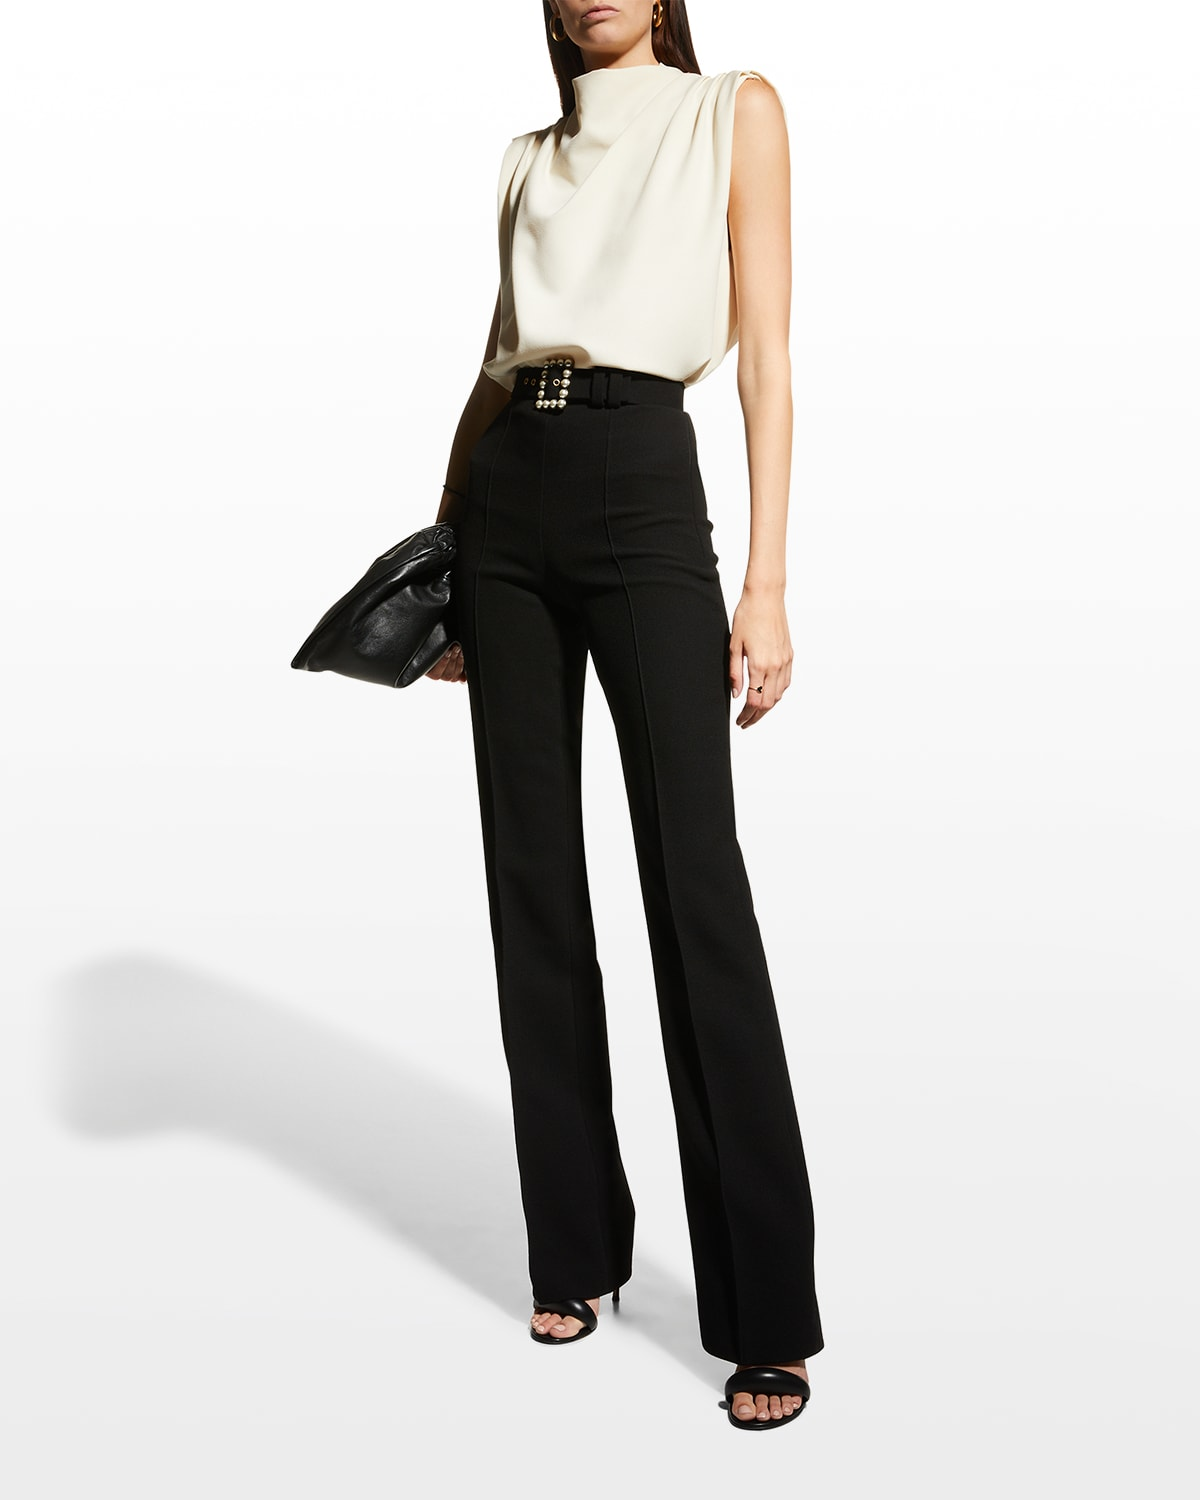 Pearl-Belted Flare Pants